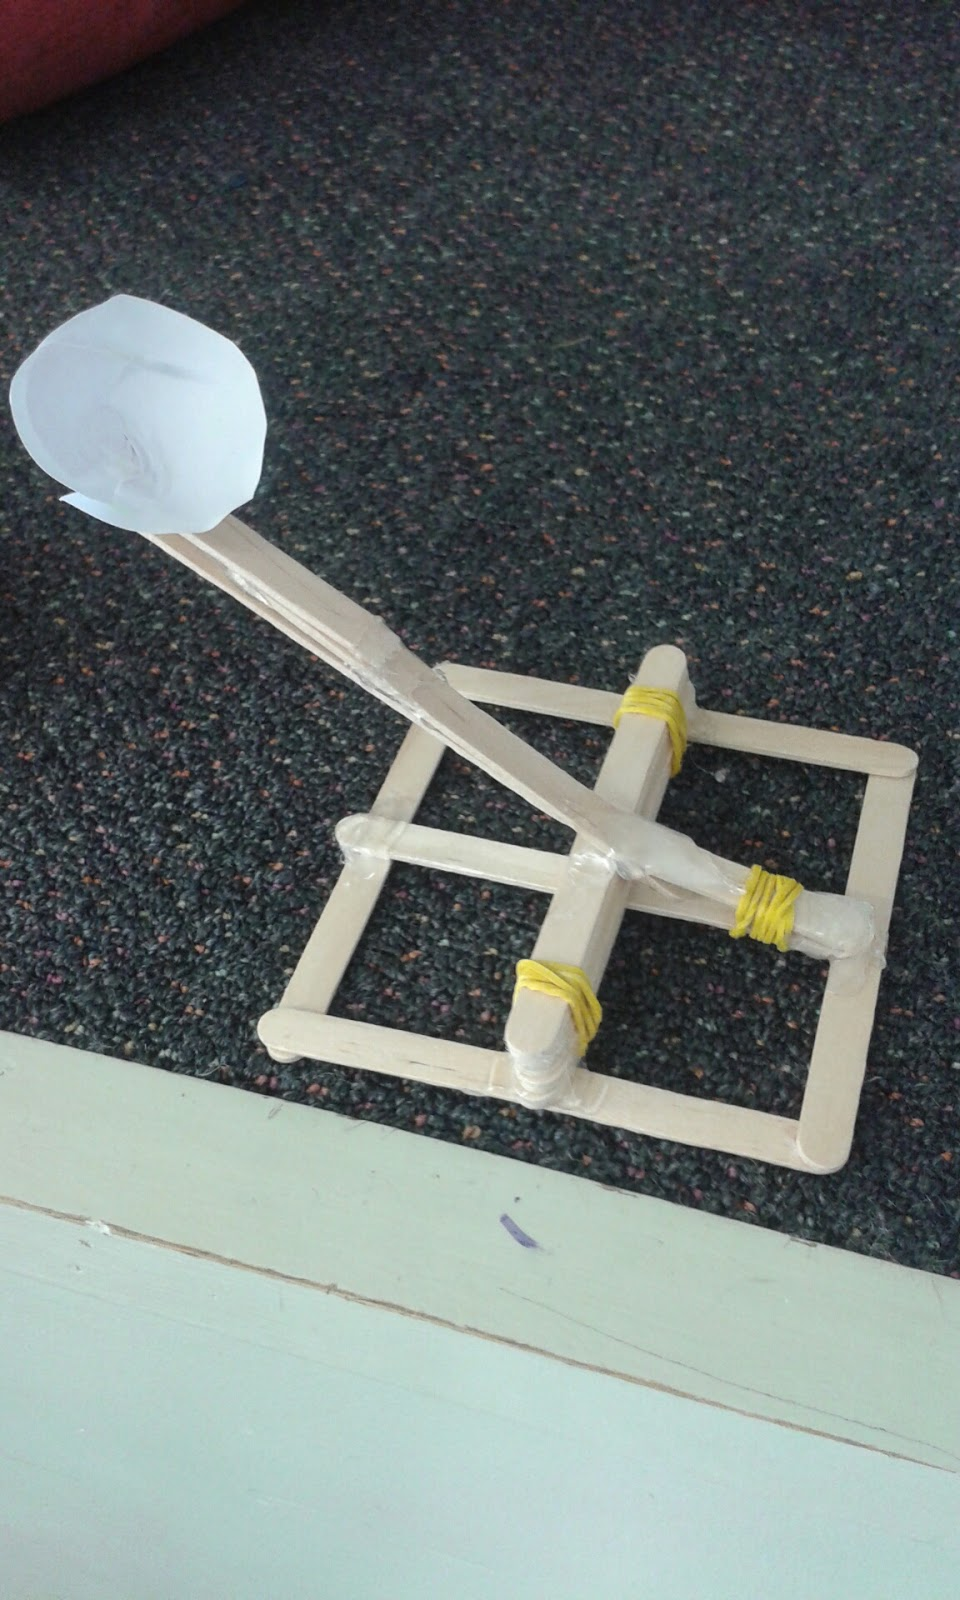 Grantlea Downs Explore It November 2015 Onager Diagram How To Build A Model After Construction We Took The Time Test Our Creations Recording Their Capabilities In Terms Of Distance Projectile And Height